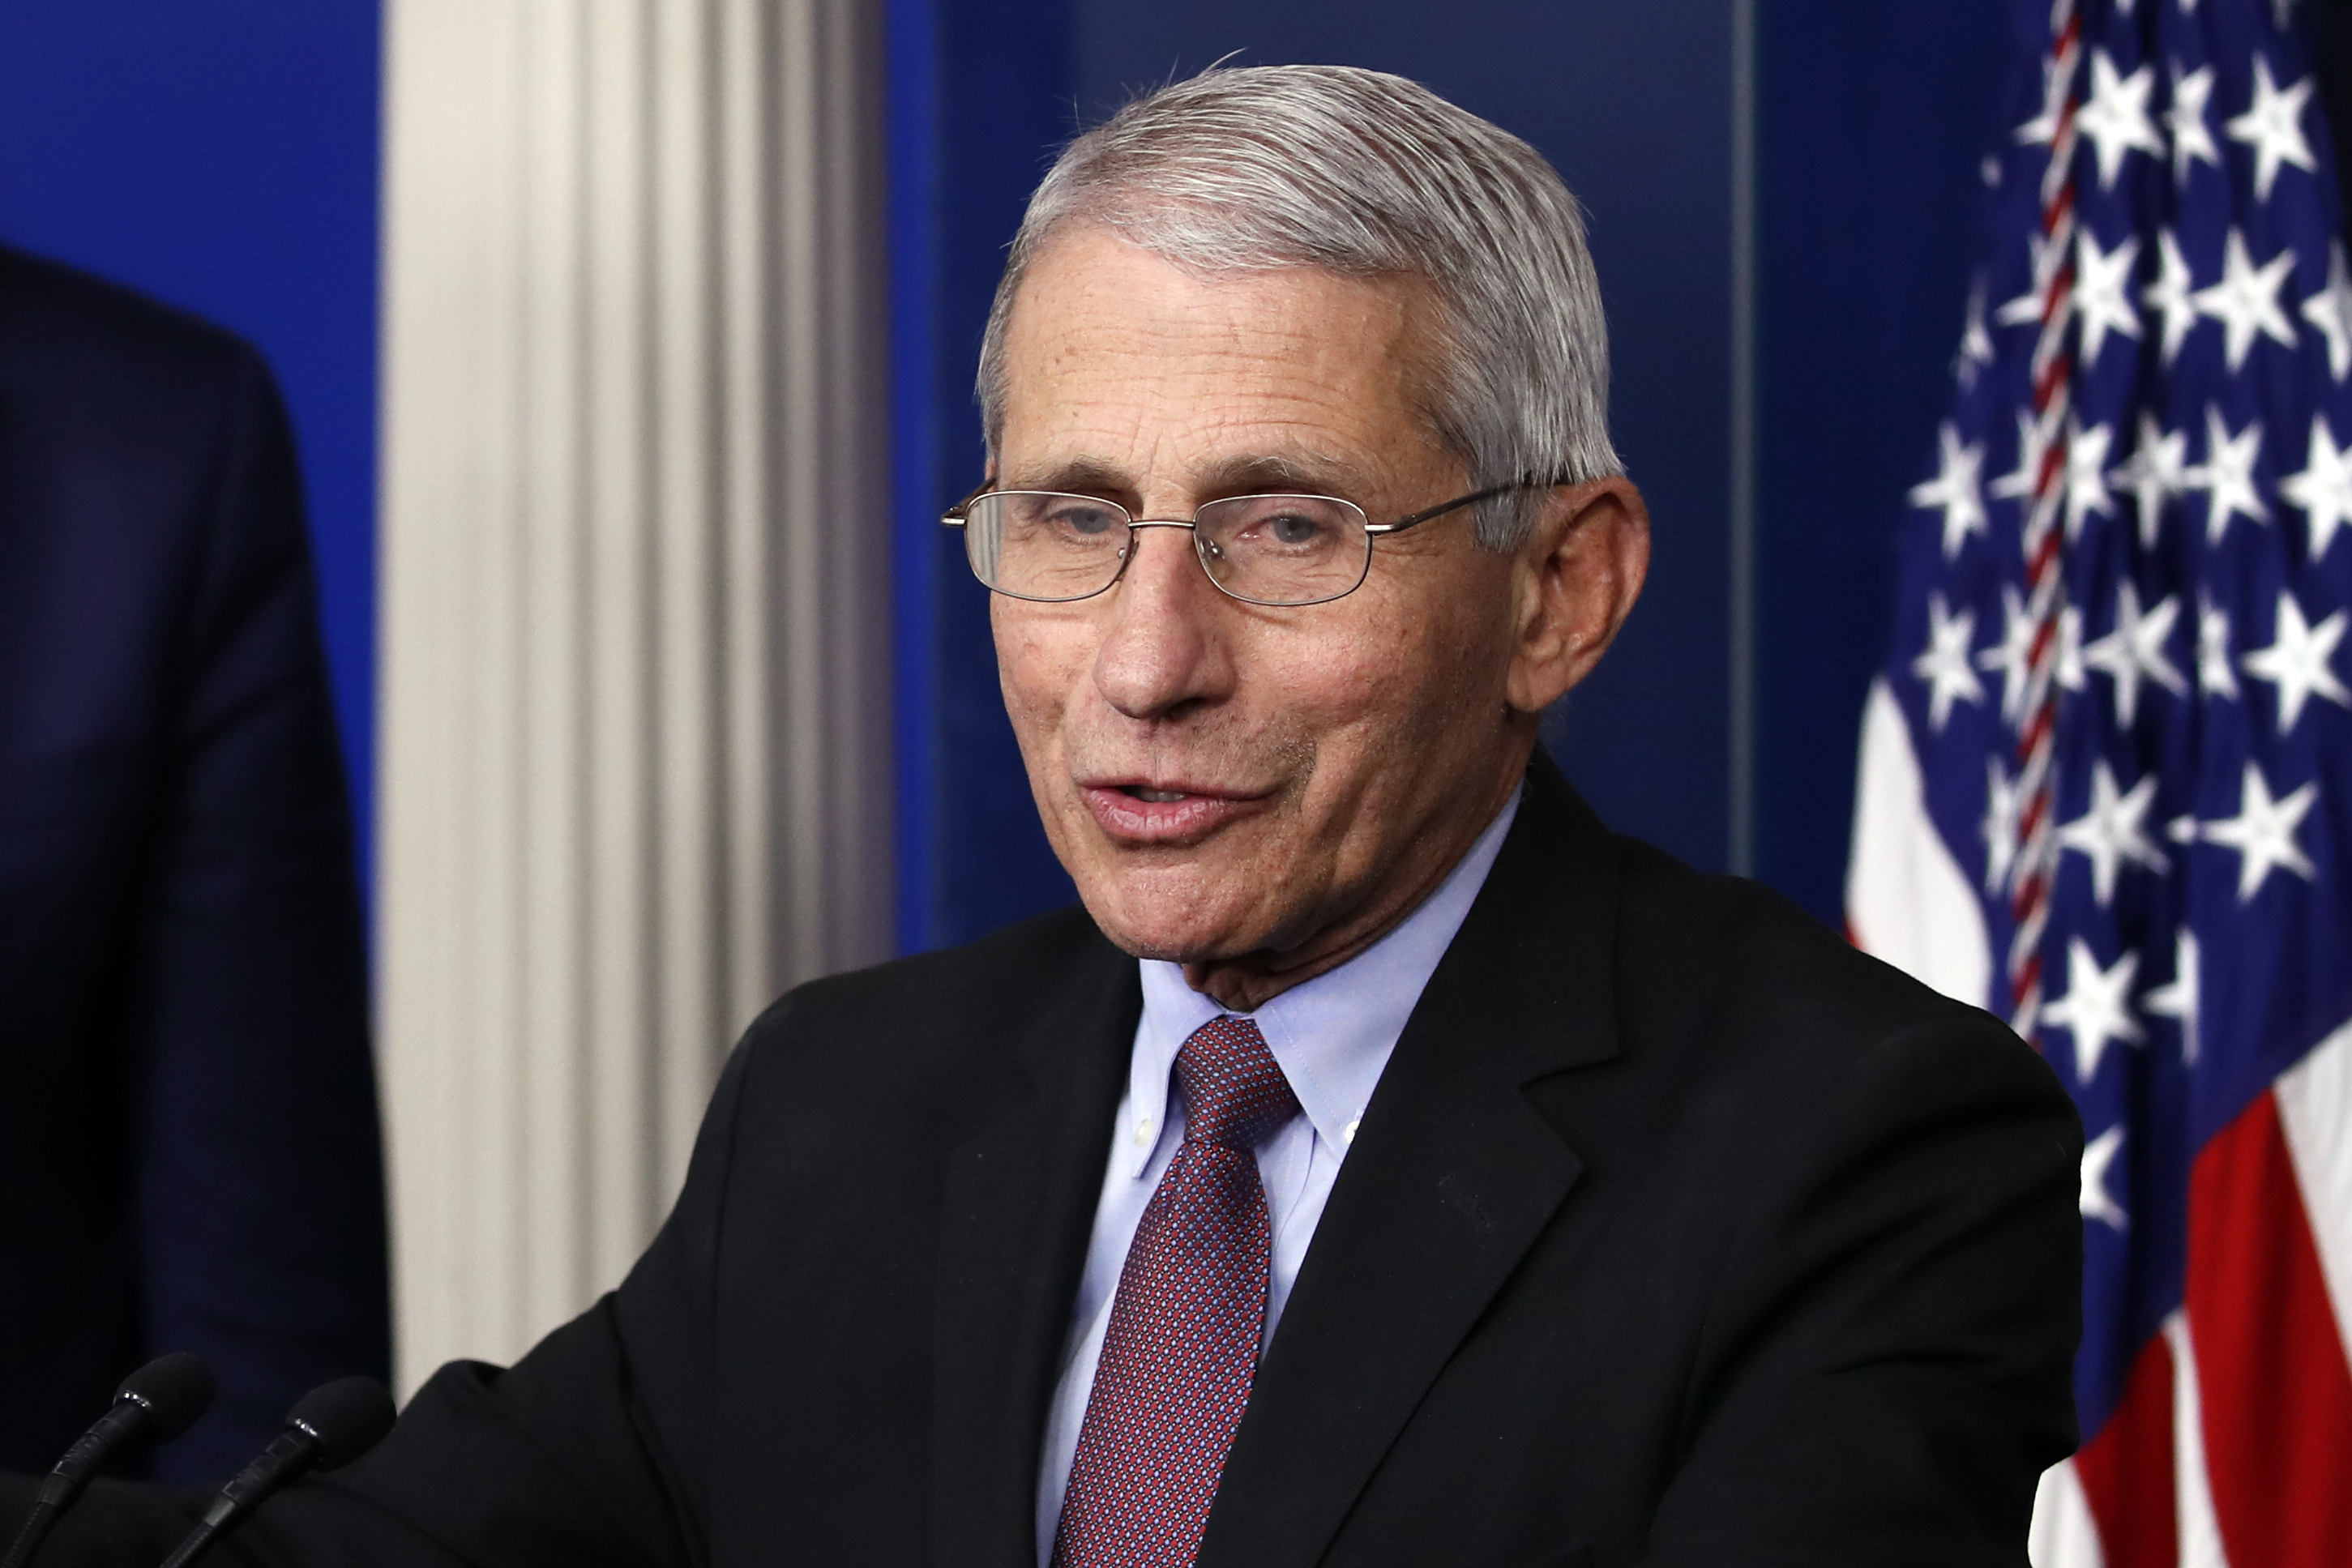 Dr. Anthony Fauci, director of the National Institute of Allergy and Infectious Diseases, speaks about the coronavirus during a press briefing at the White House on April 22.